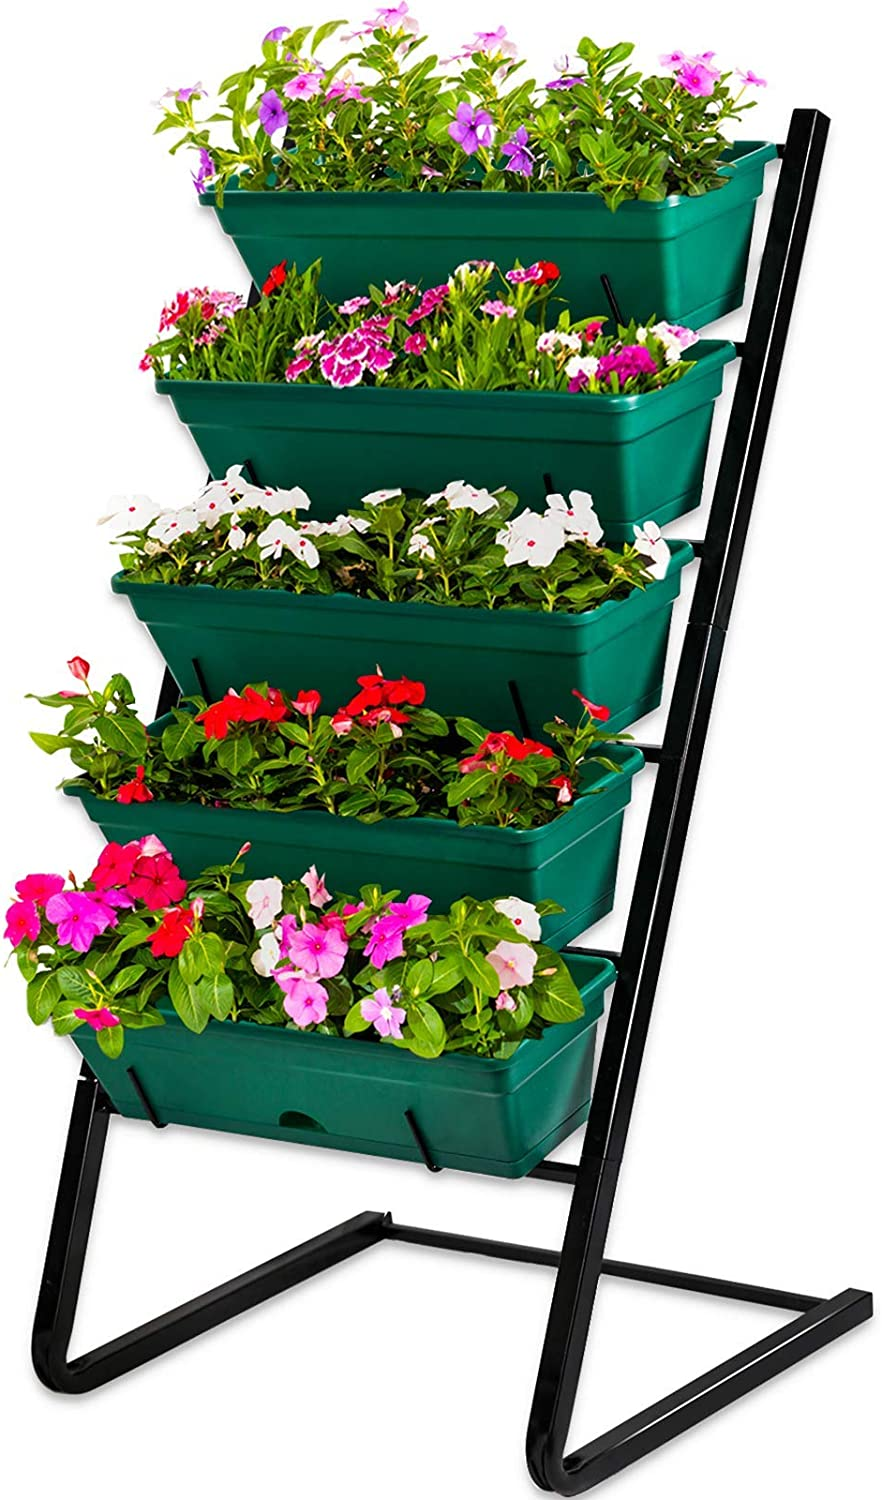 CERBIOR Vertical Garden Herb Raised Bed 4FT Freestanding Elevated Planters with 5 Container Boxes, Good for Patio Balcony Indoor Outdoor (Green)